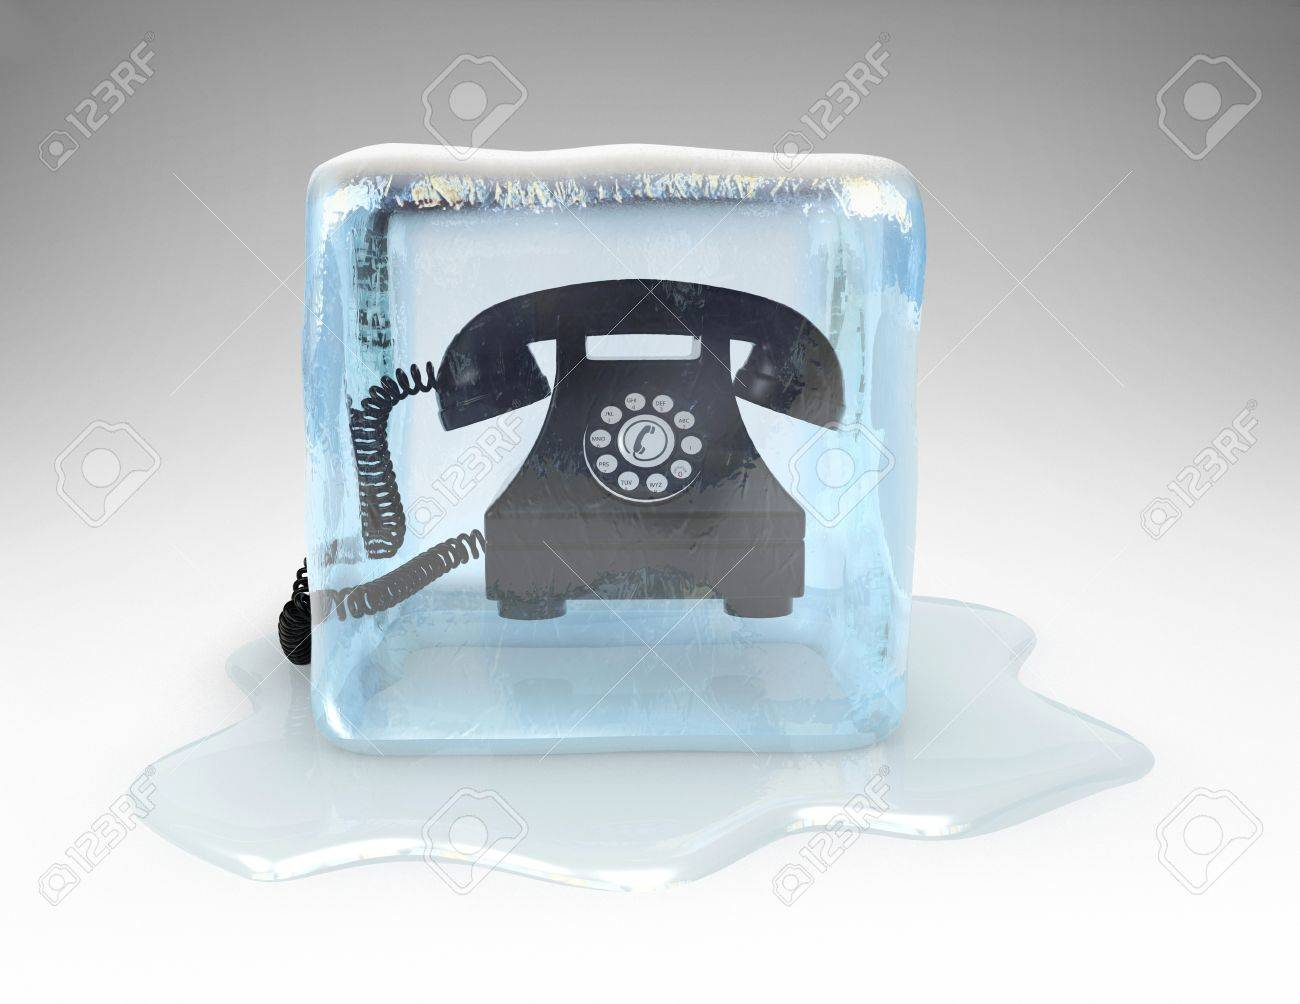 Telephone frozen in a block of ice Stock Photo - 16948246